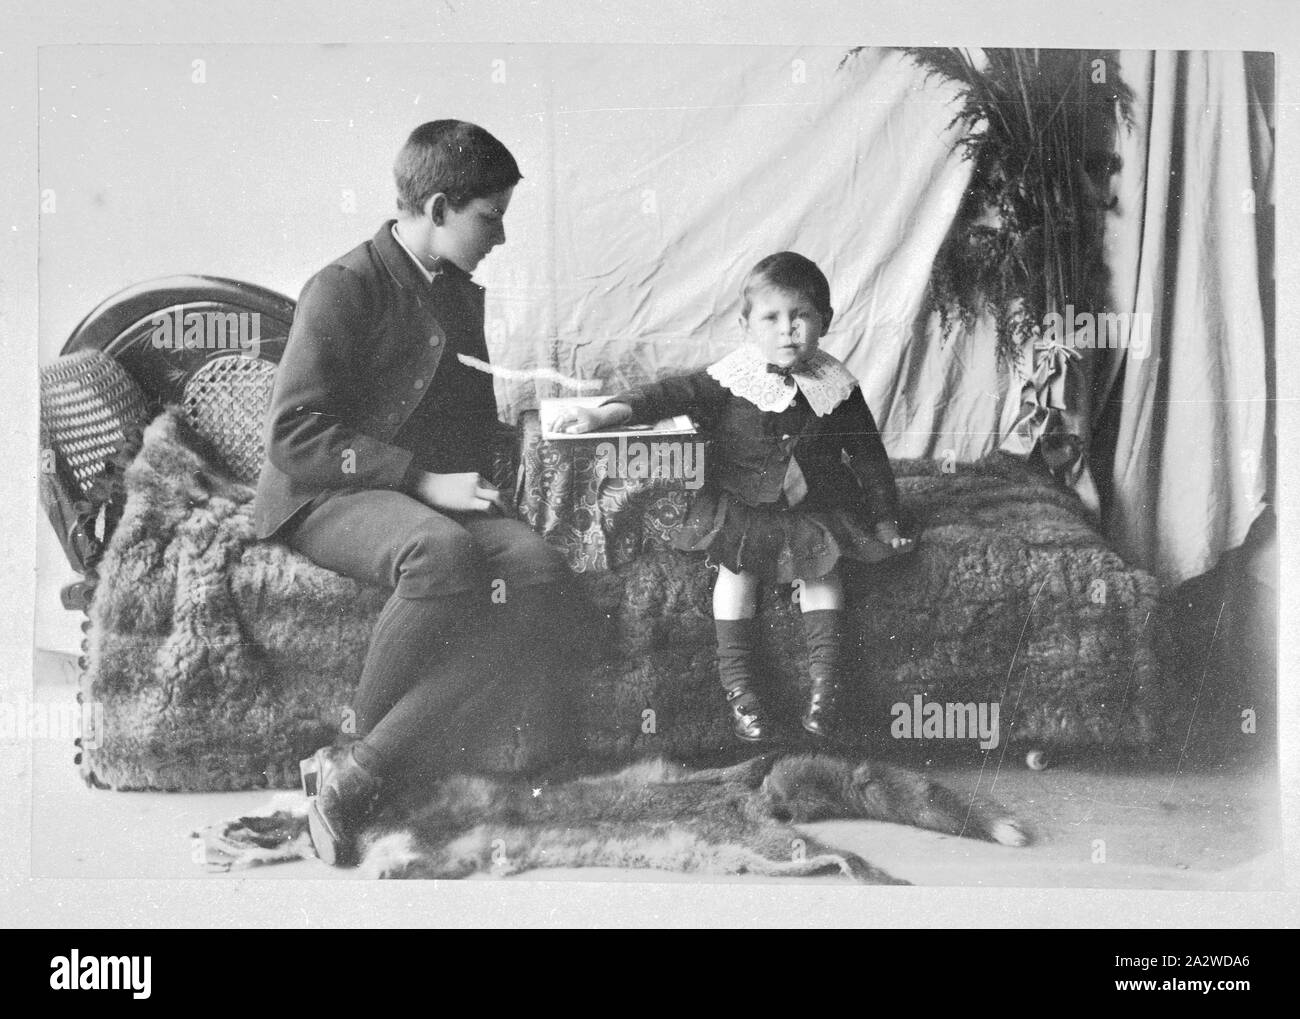 Photograph - by A.J. Campbell, Victoria, circa 1890, A studio photograph of two boys seated on a sofa. The younger boy rests his arm on what may be a games board while the older boy is looking at the board. The sofa is covered by a possum (?) skin rug Stock Photo